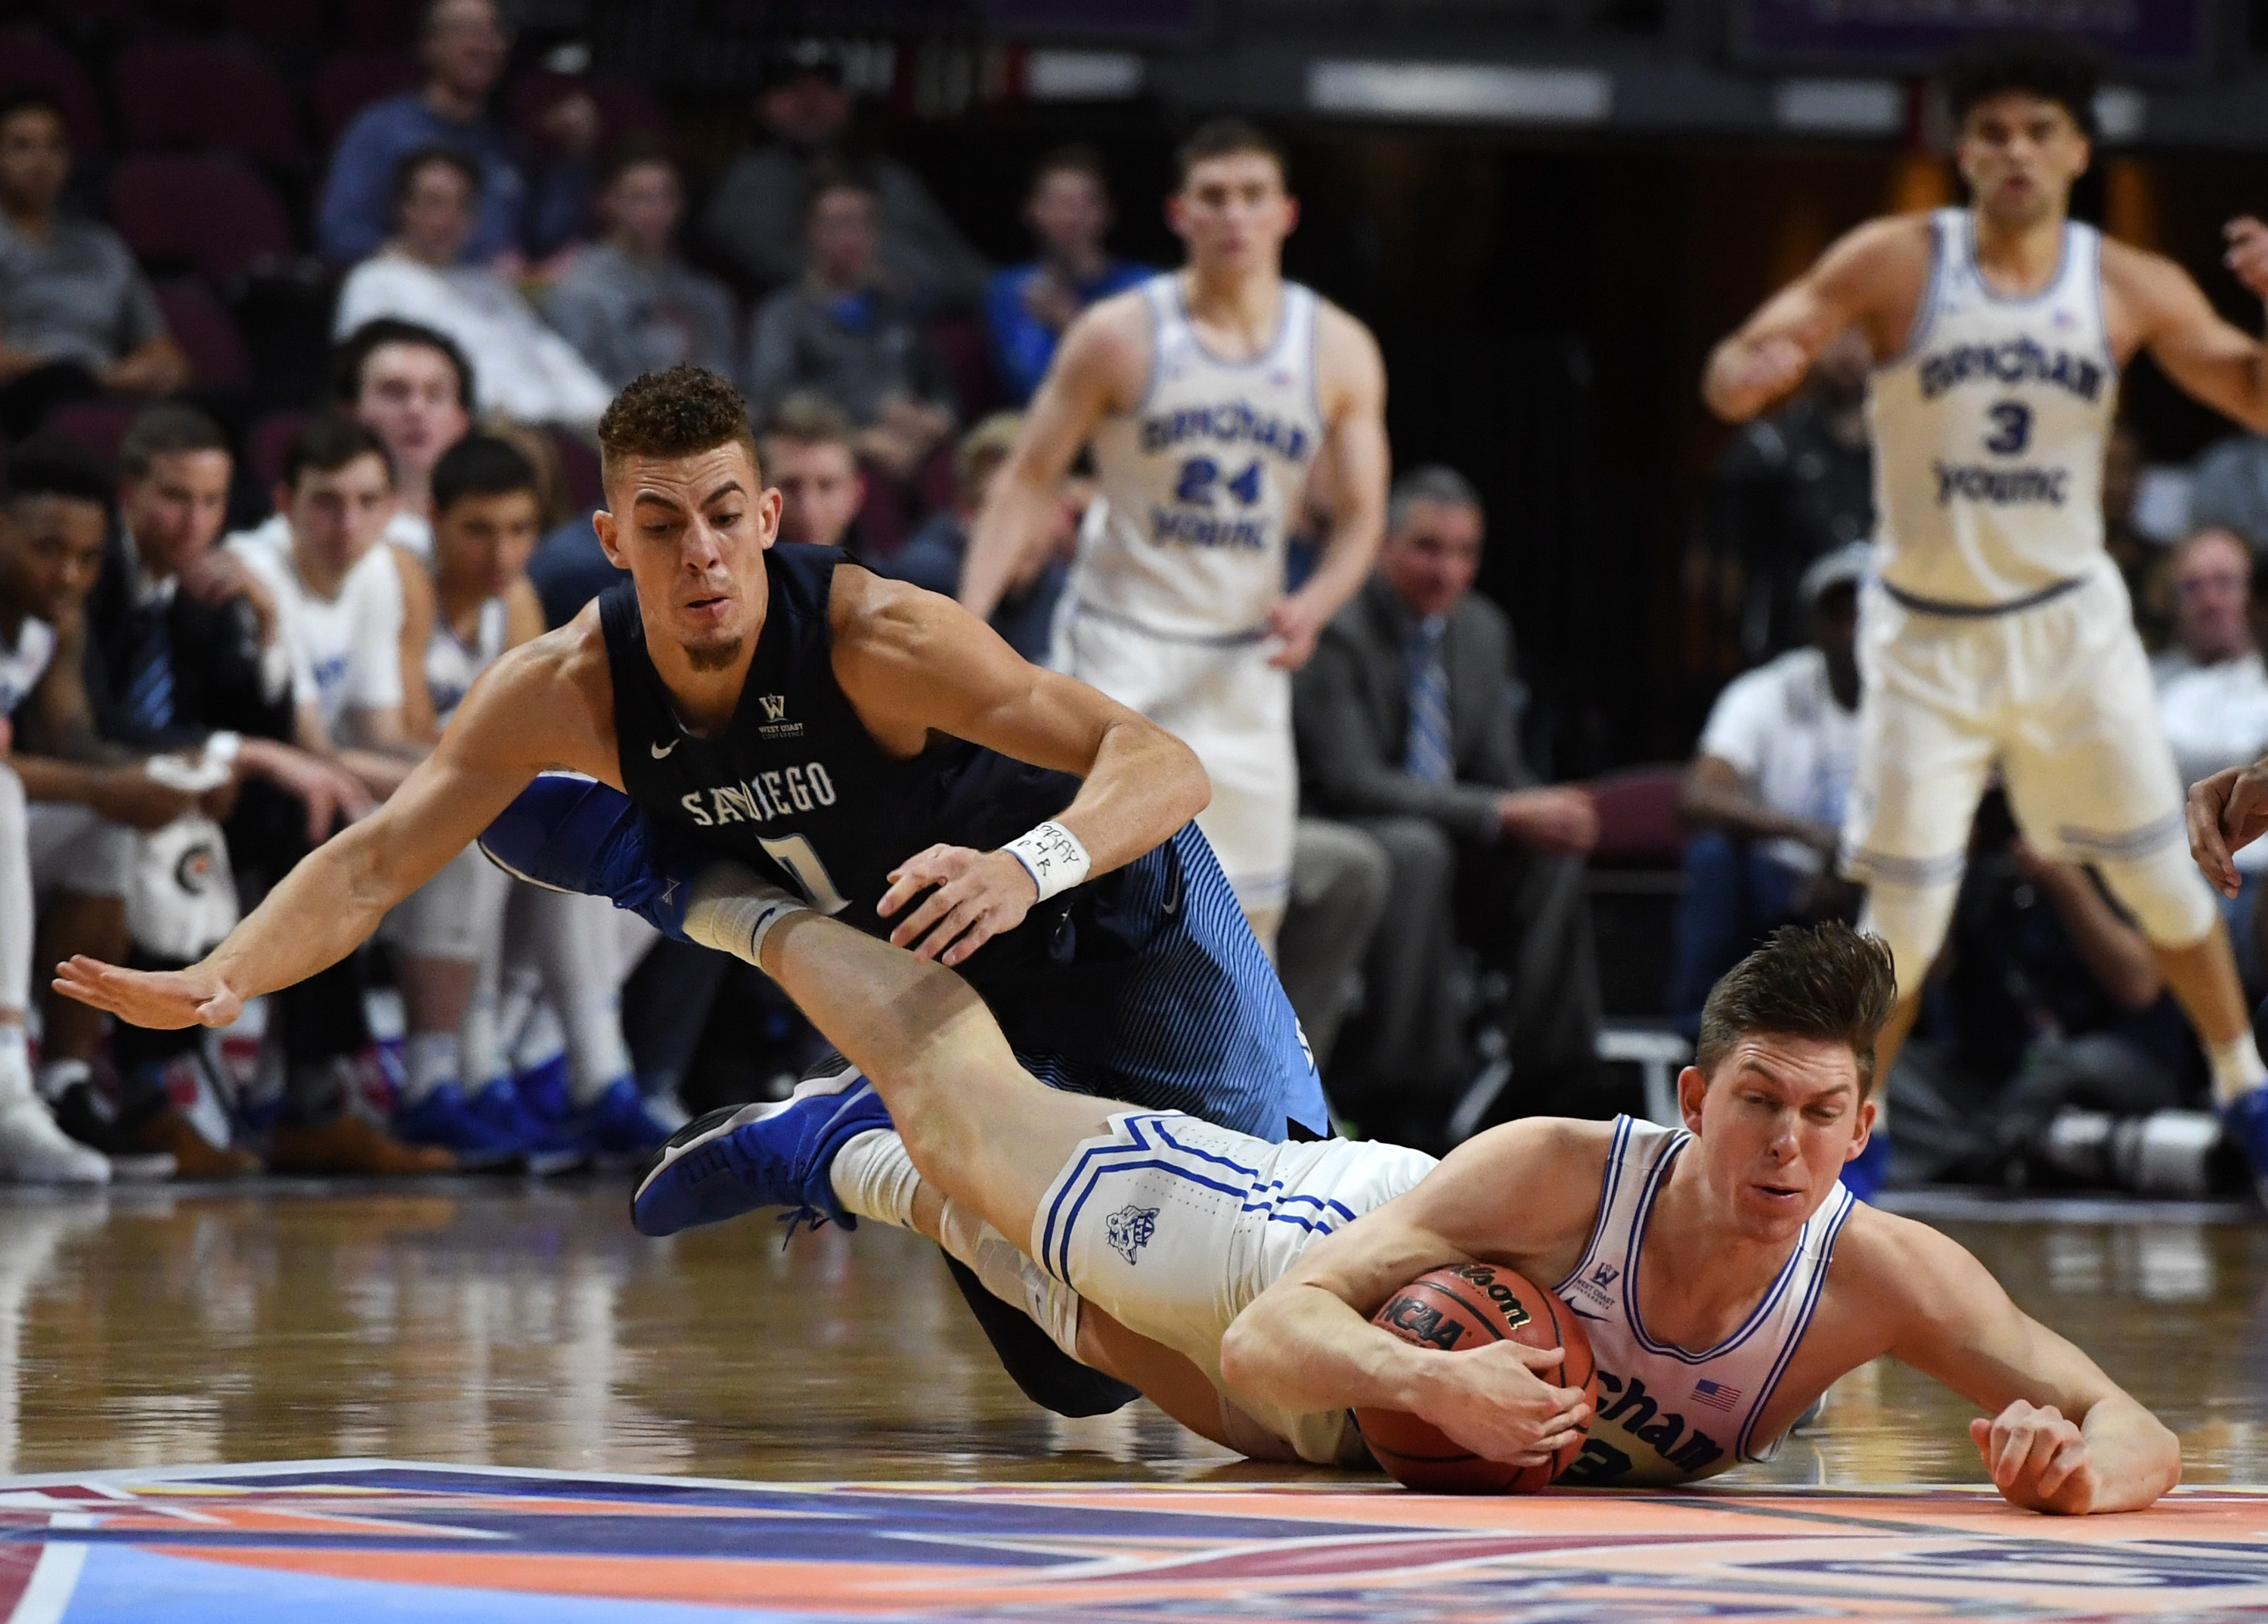 Isaiah Pineiro of the San Diego Toreros and Dalton Nixon of the Brigham Young Cougars go after a loose ball during a quarterfinal game of the West Coast Conference basketball tournament at the Orleans Arena on March 3, 2018 in Las Vegas, Nevada. The Cougars won 85-79.